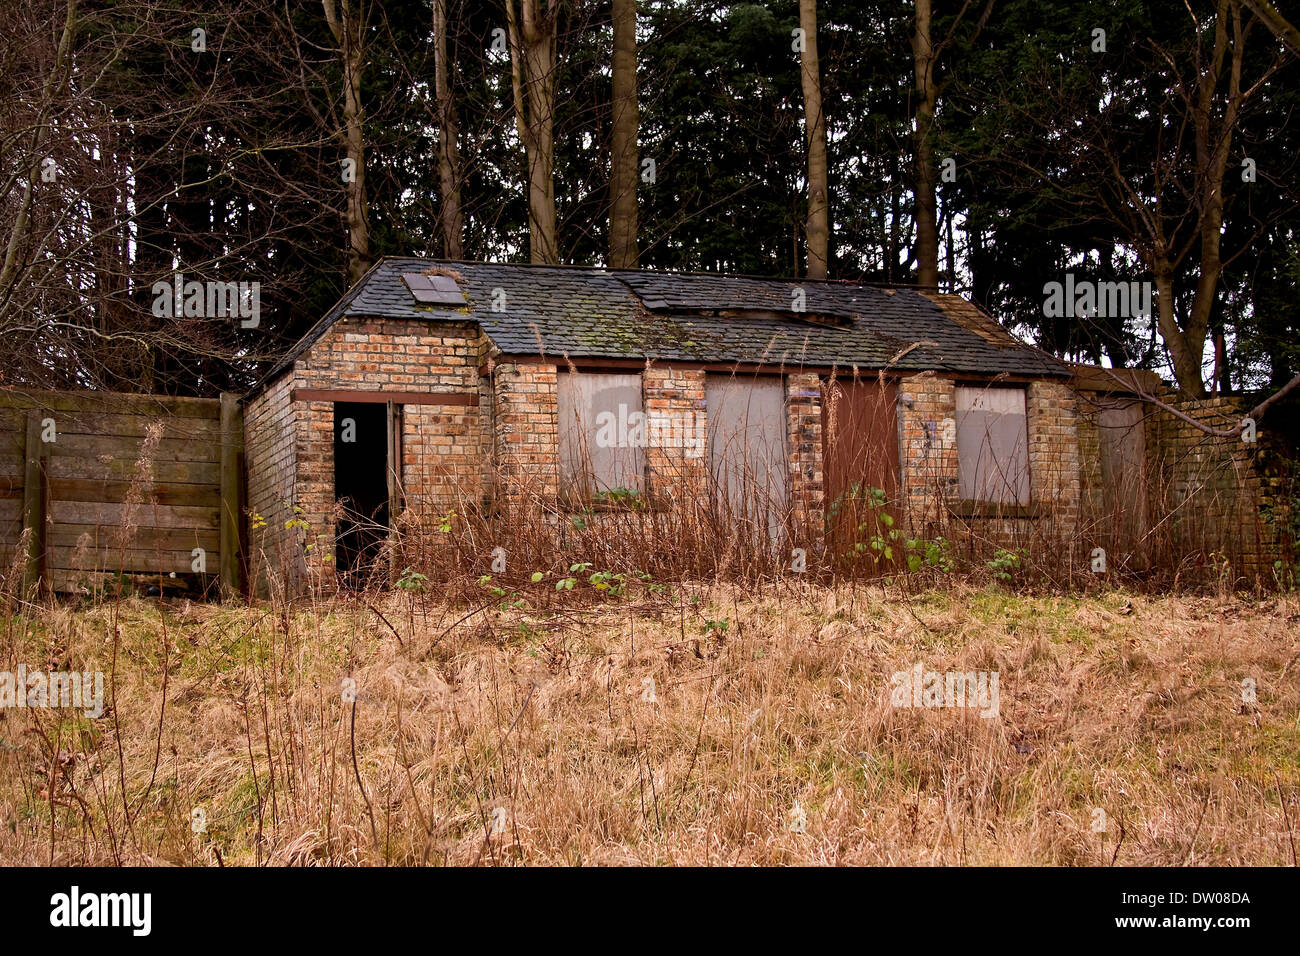 Old derelict building was an annex to the 1800`s Lochee Railway Station in Dundee, UK - Stock Image